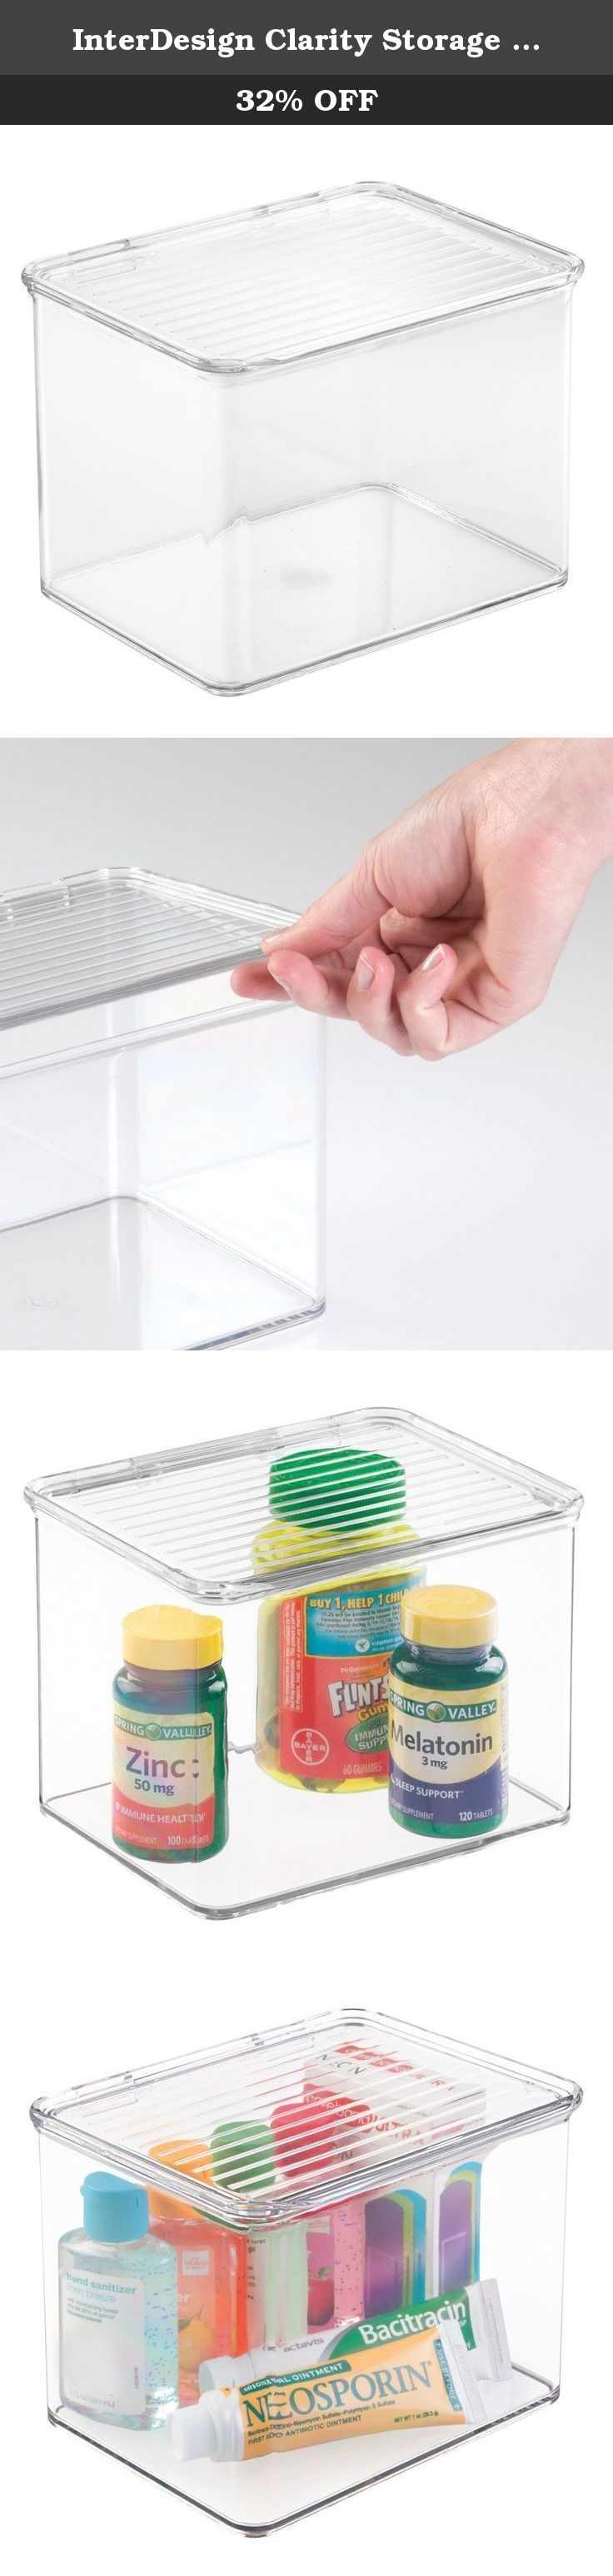 InterDesign Clarity Storage Box Organizer for Vitamins, Medicine, Medical, Dental Supplies with Lid, 2.2 quarts, Clear. The InterDesign clarity medicine & vanity storage box is great for medicine storage, first-aid kits, makeup, vitamin storage & more! the hinged lid assures contents are safe & easily accessible. Boxes stack for organization.